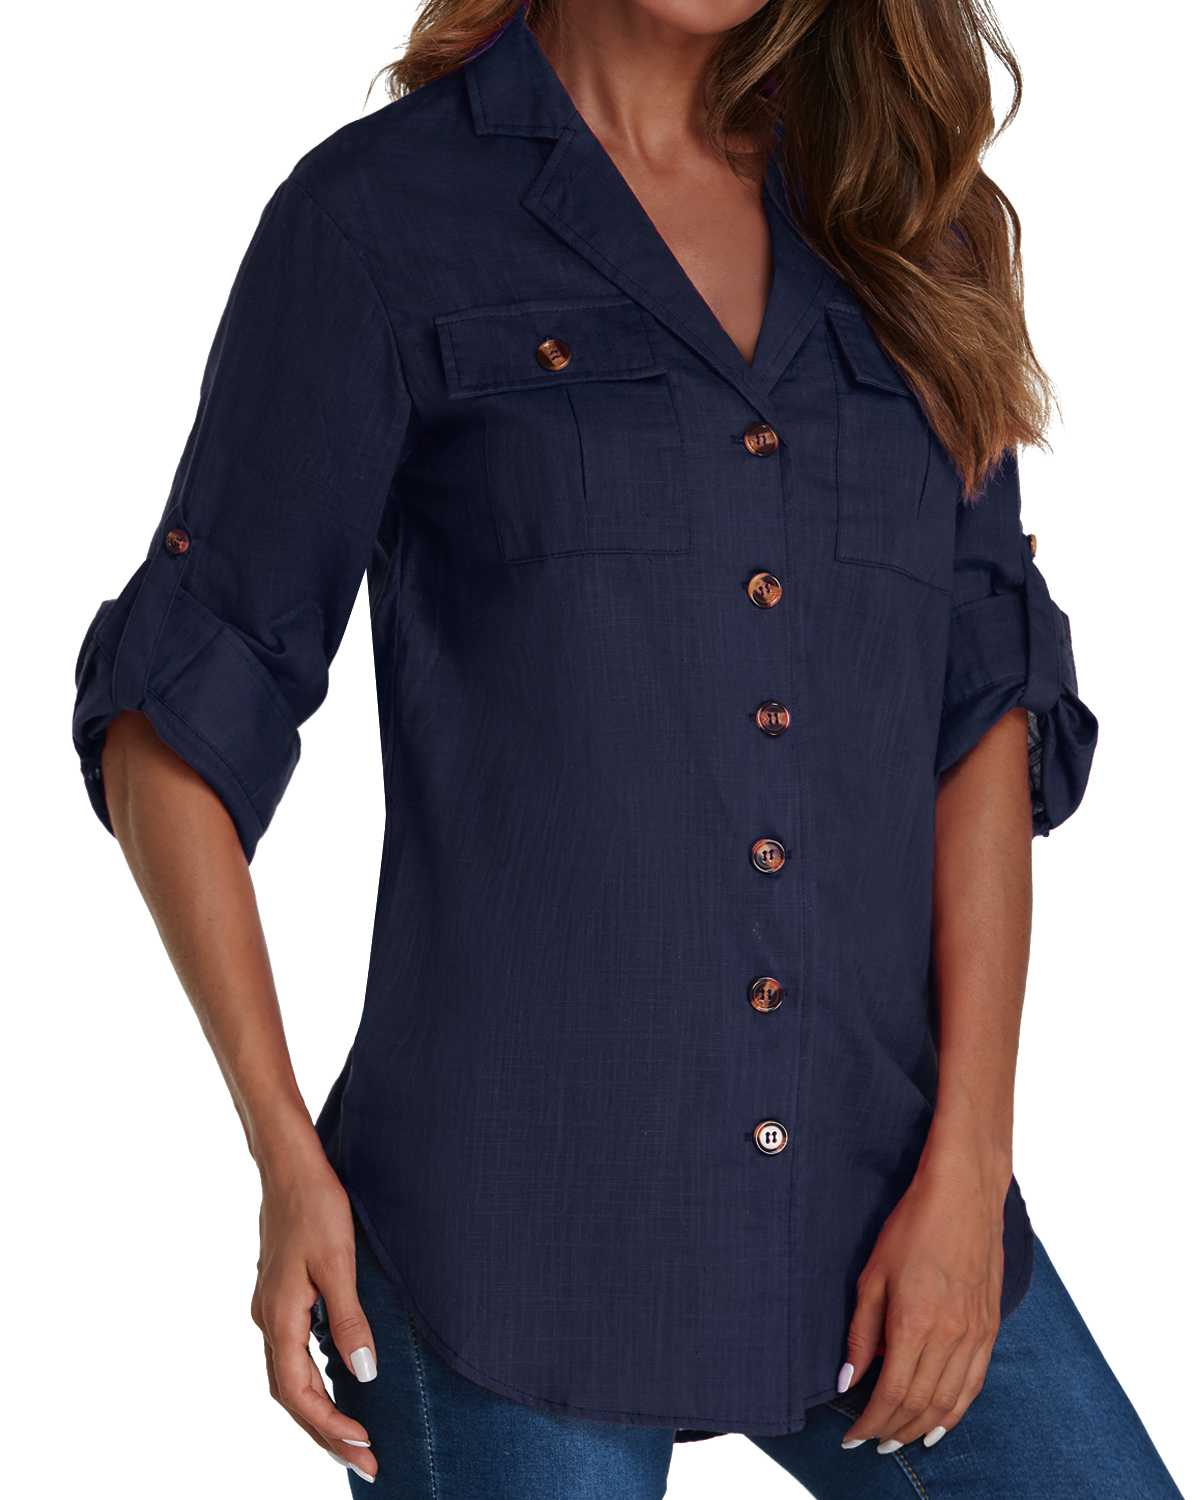 Casual Solid Hem   Blouse     Shirts   Women Elegant Turn-Down Collar Lapel 3/4 Sleeve Pockets Buttons Asymmetrical Top Blusas Femininas